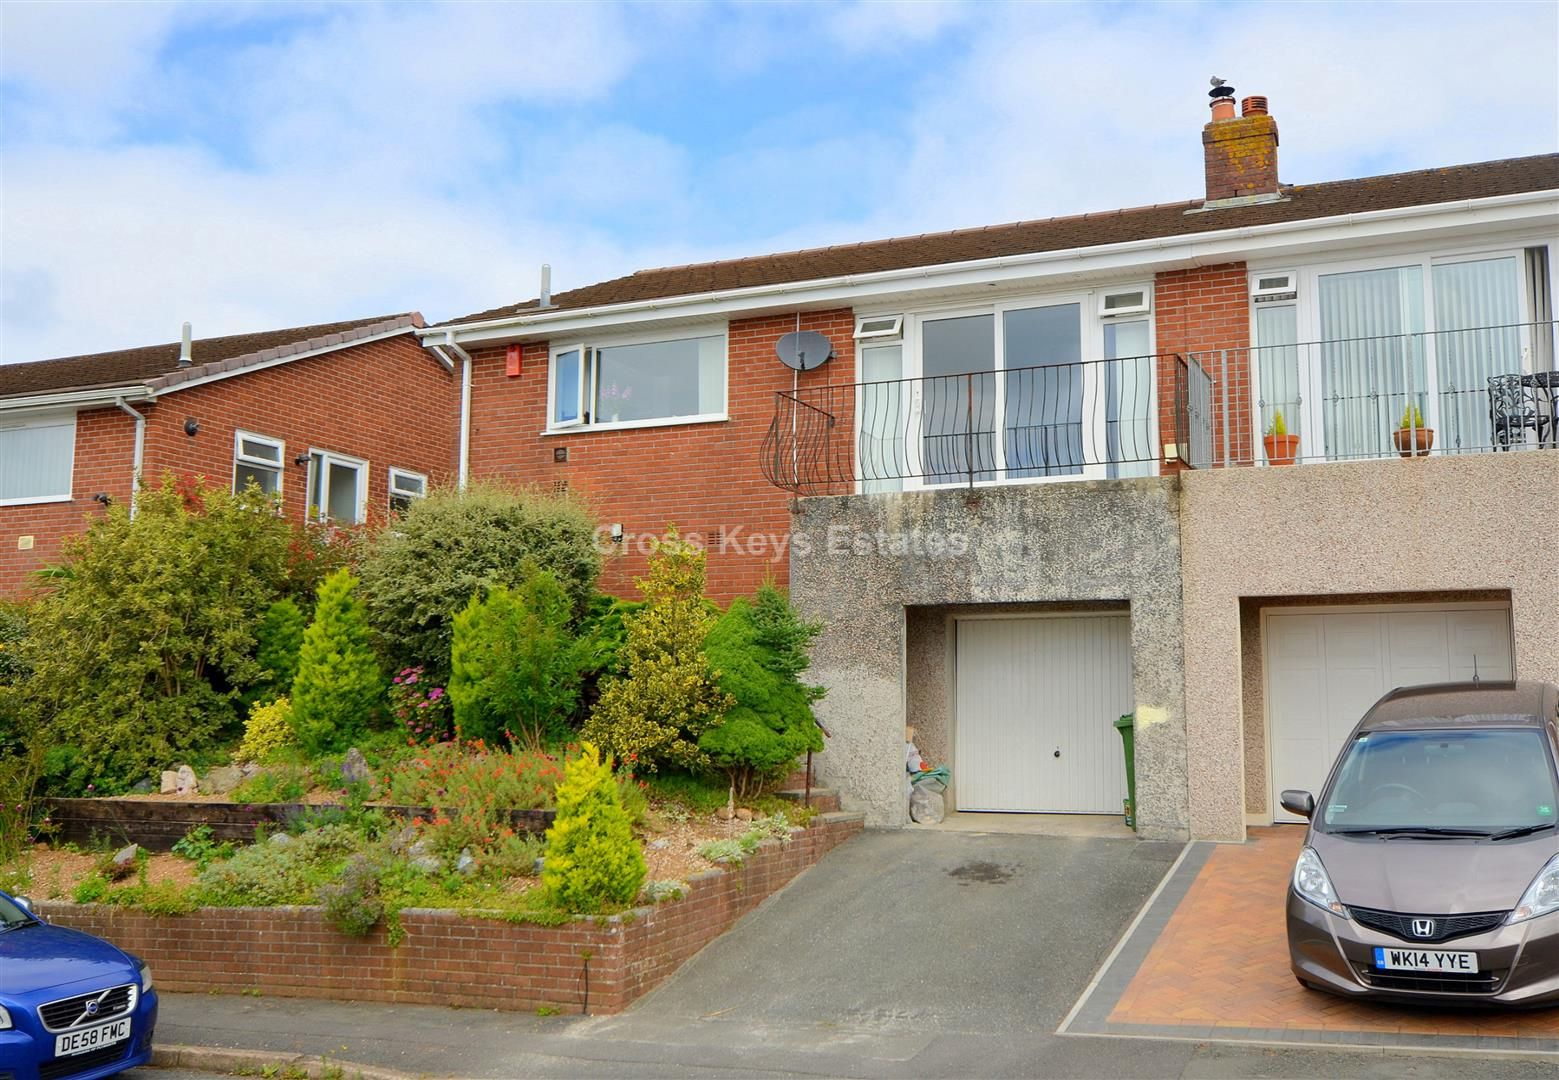 Cross Keys Estate Agents Sales Property of the Week 2